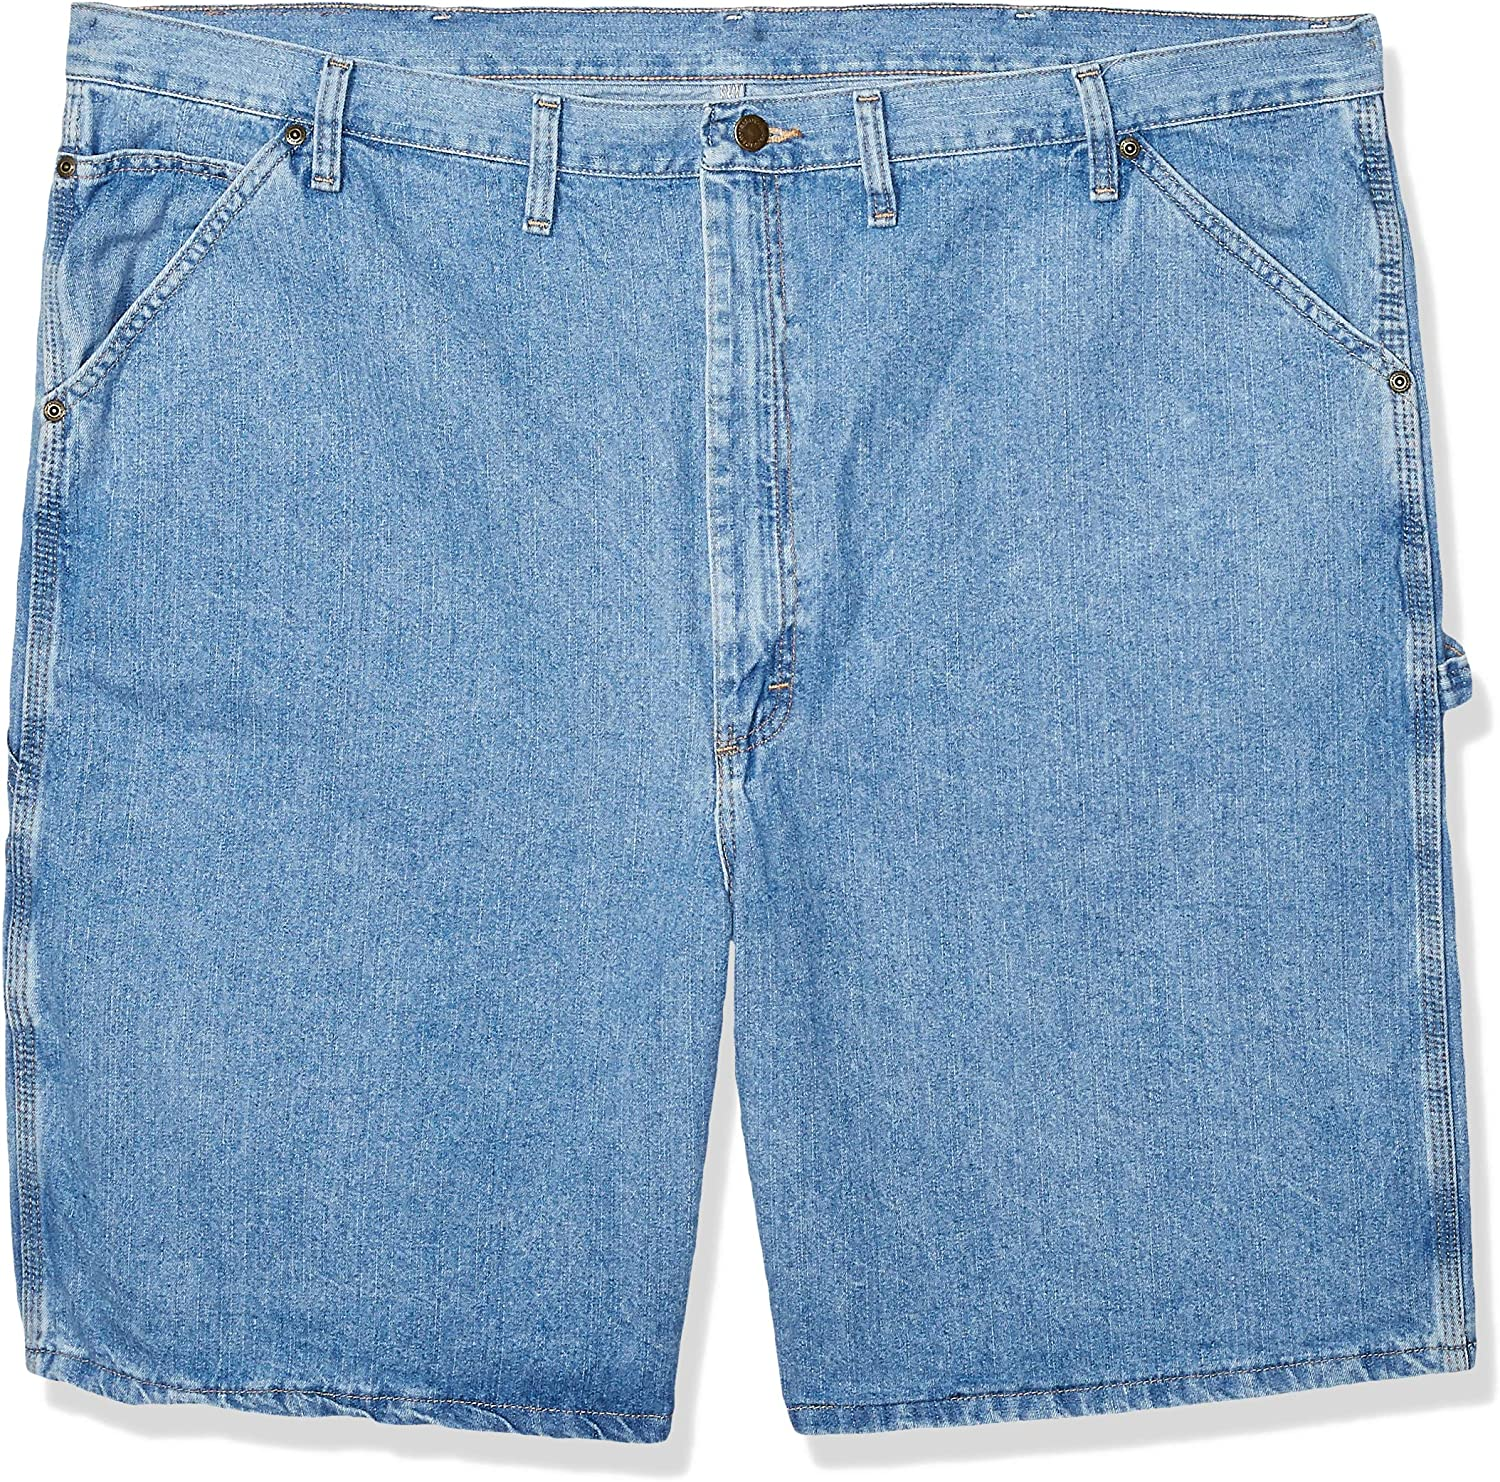 Wrangler Rugged Wear,Carpenter Short,Loose Fit